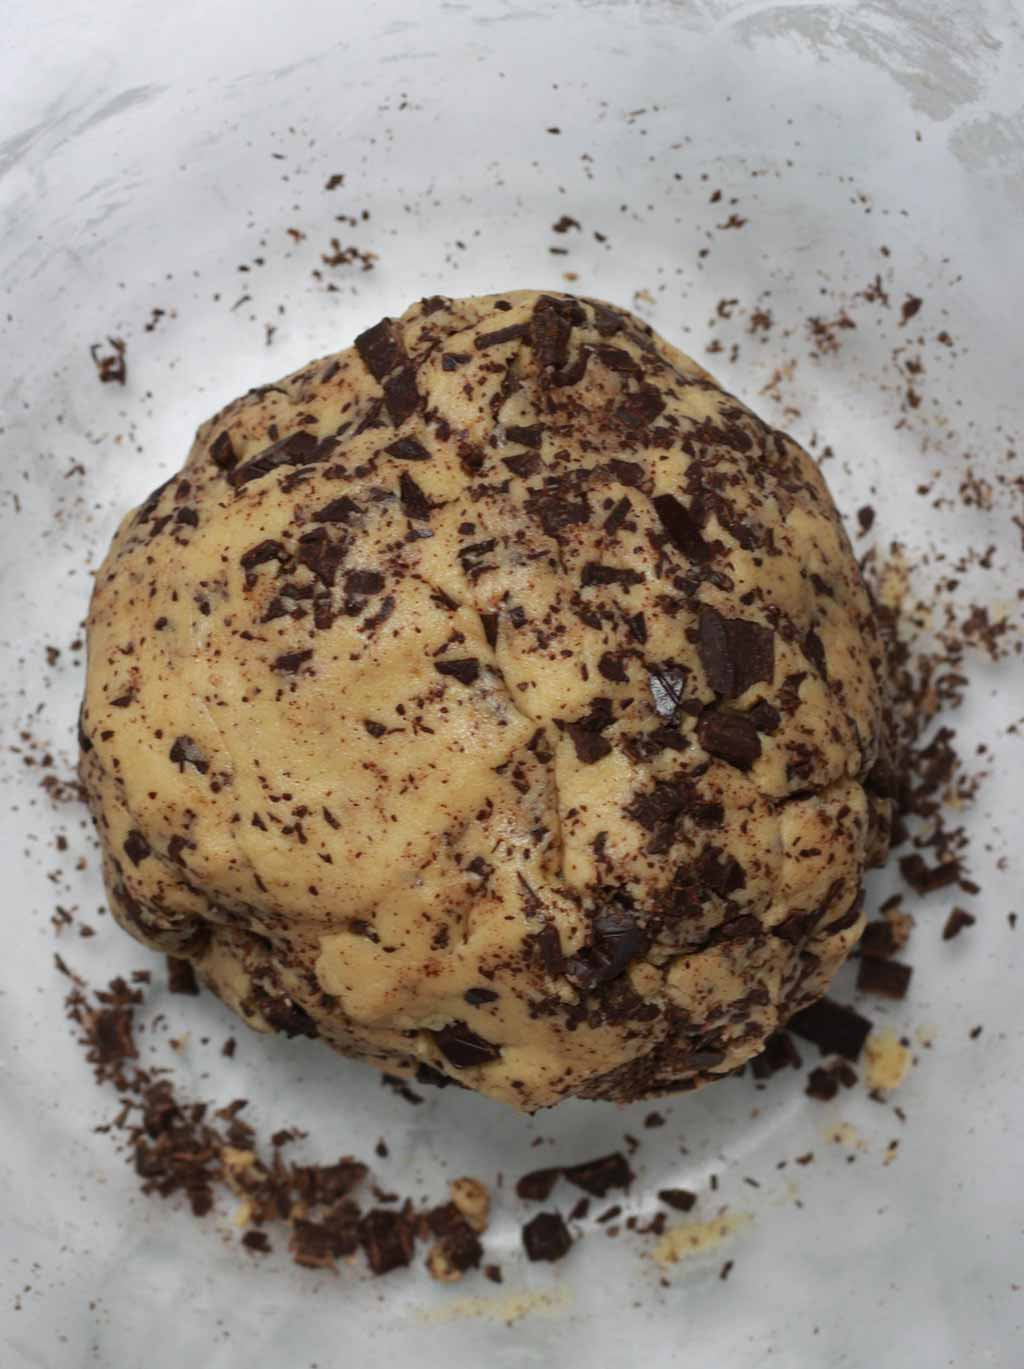 Ball Of Chocolate Chip Gluten Free Cookie Dough